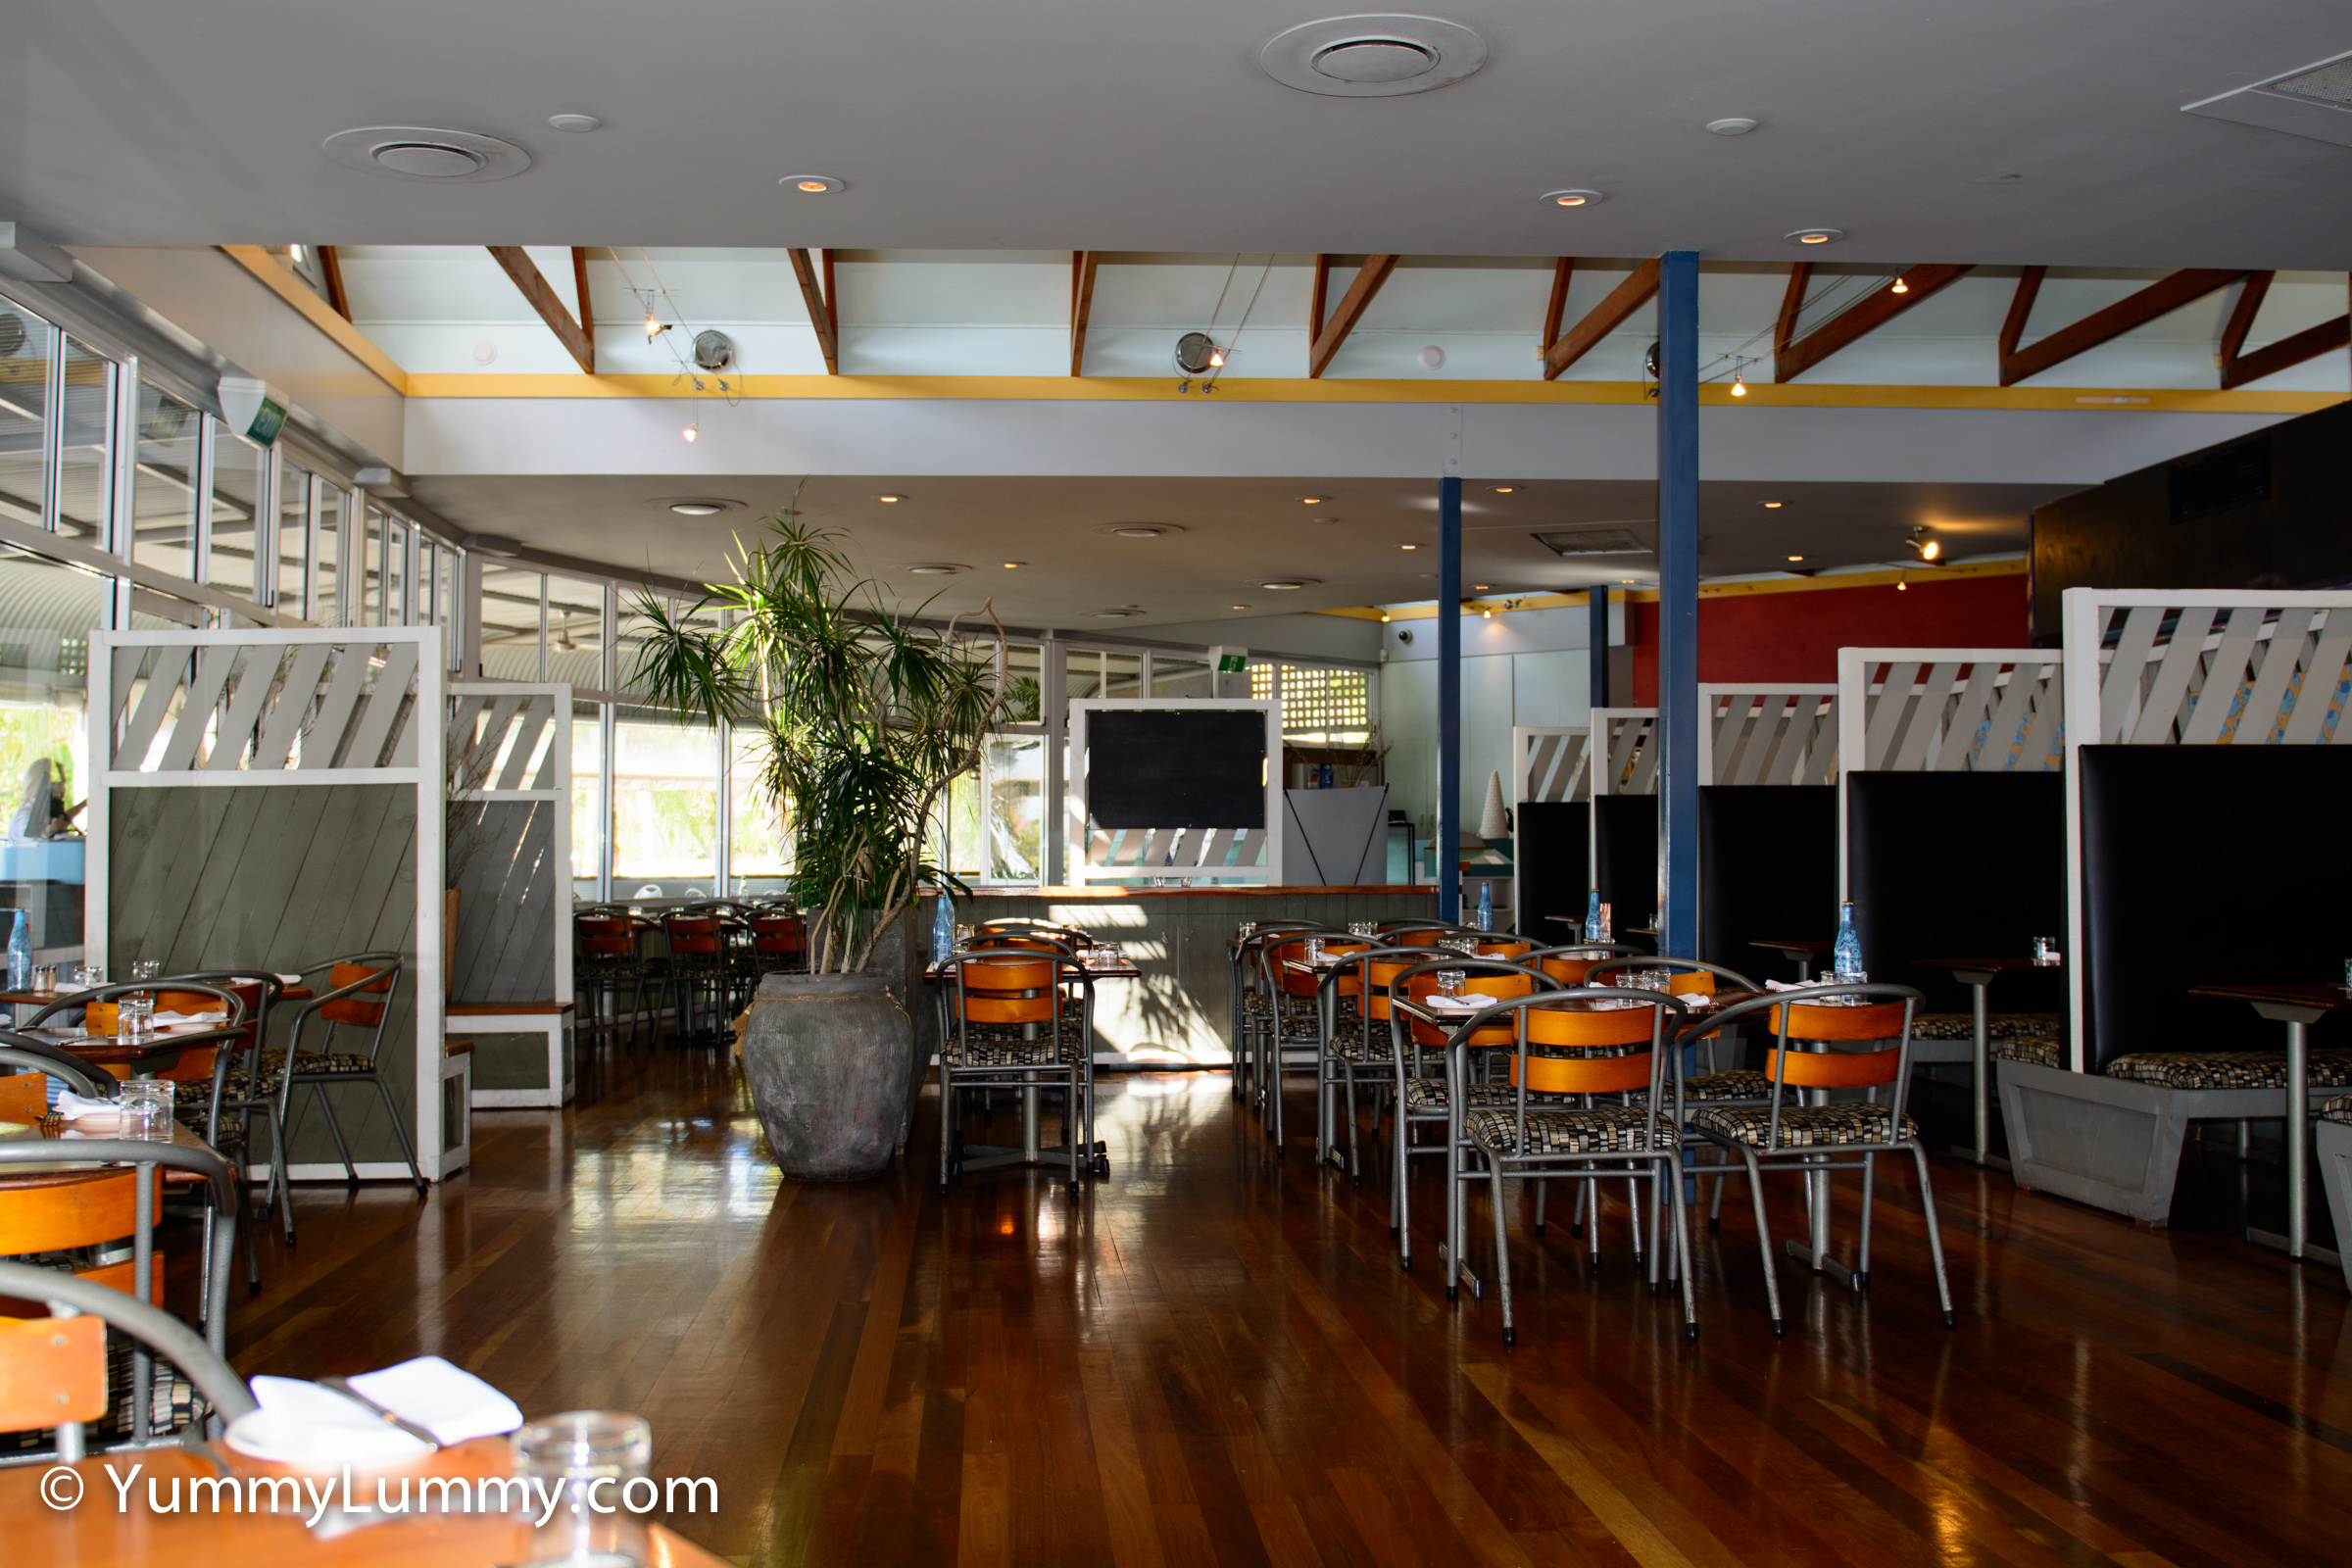 A photograph of the inside of Morgans Seafood Restaurant